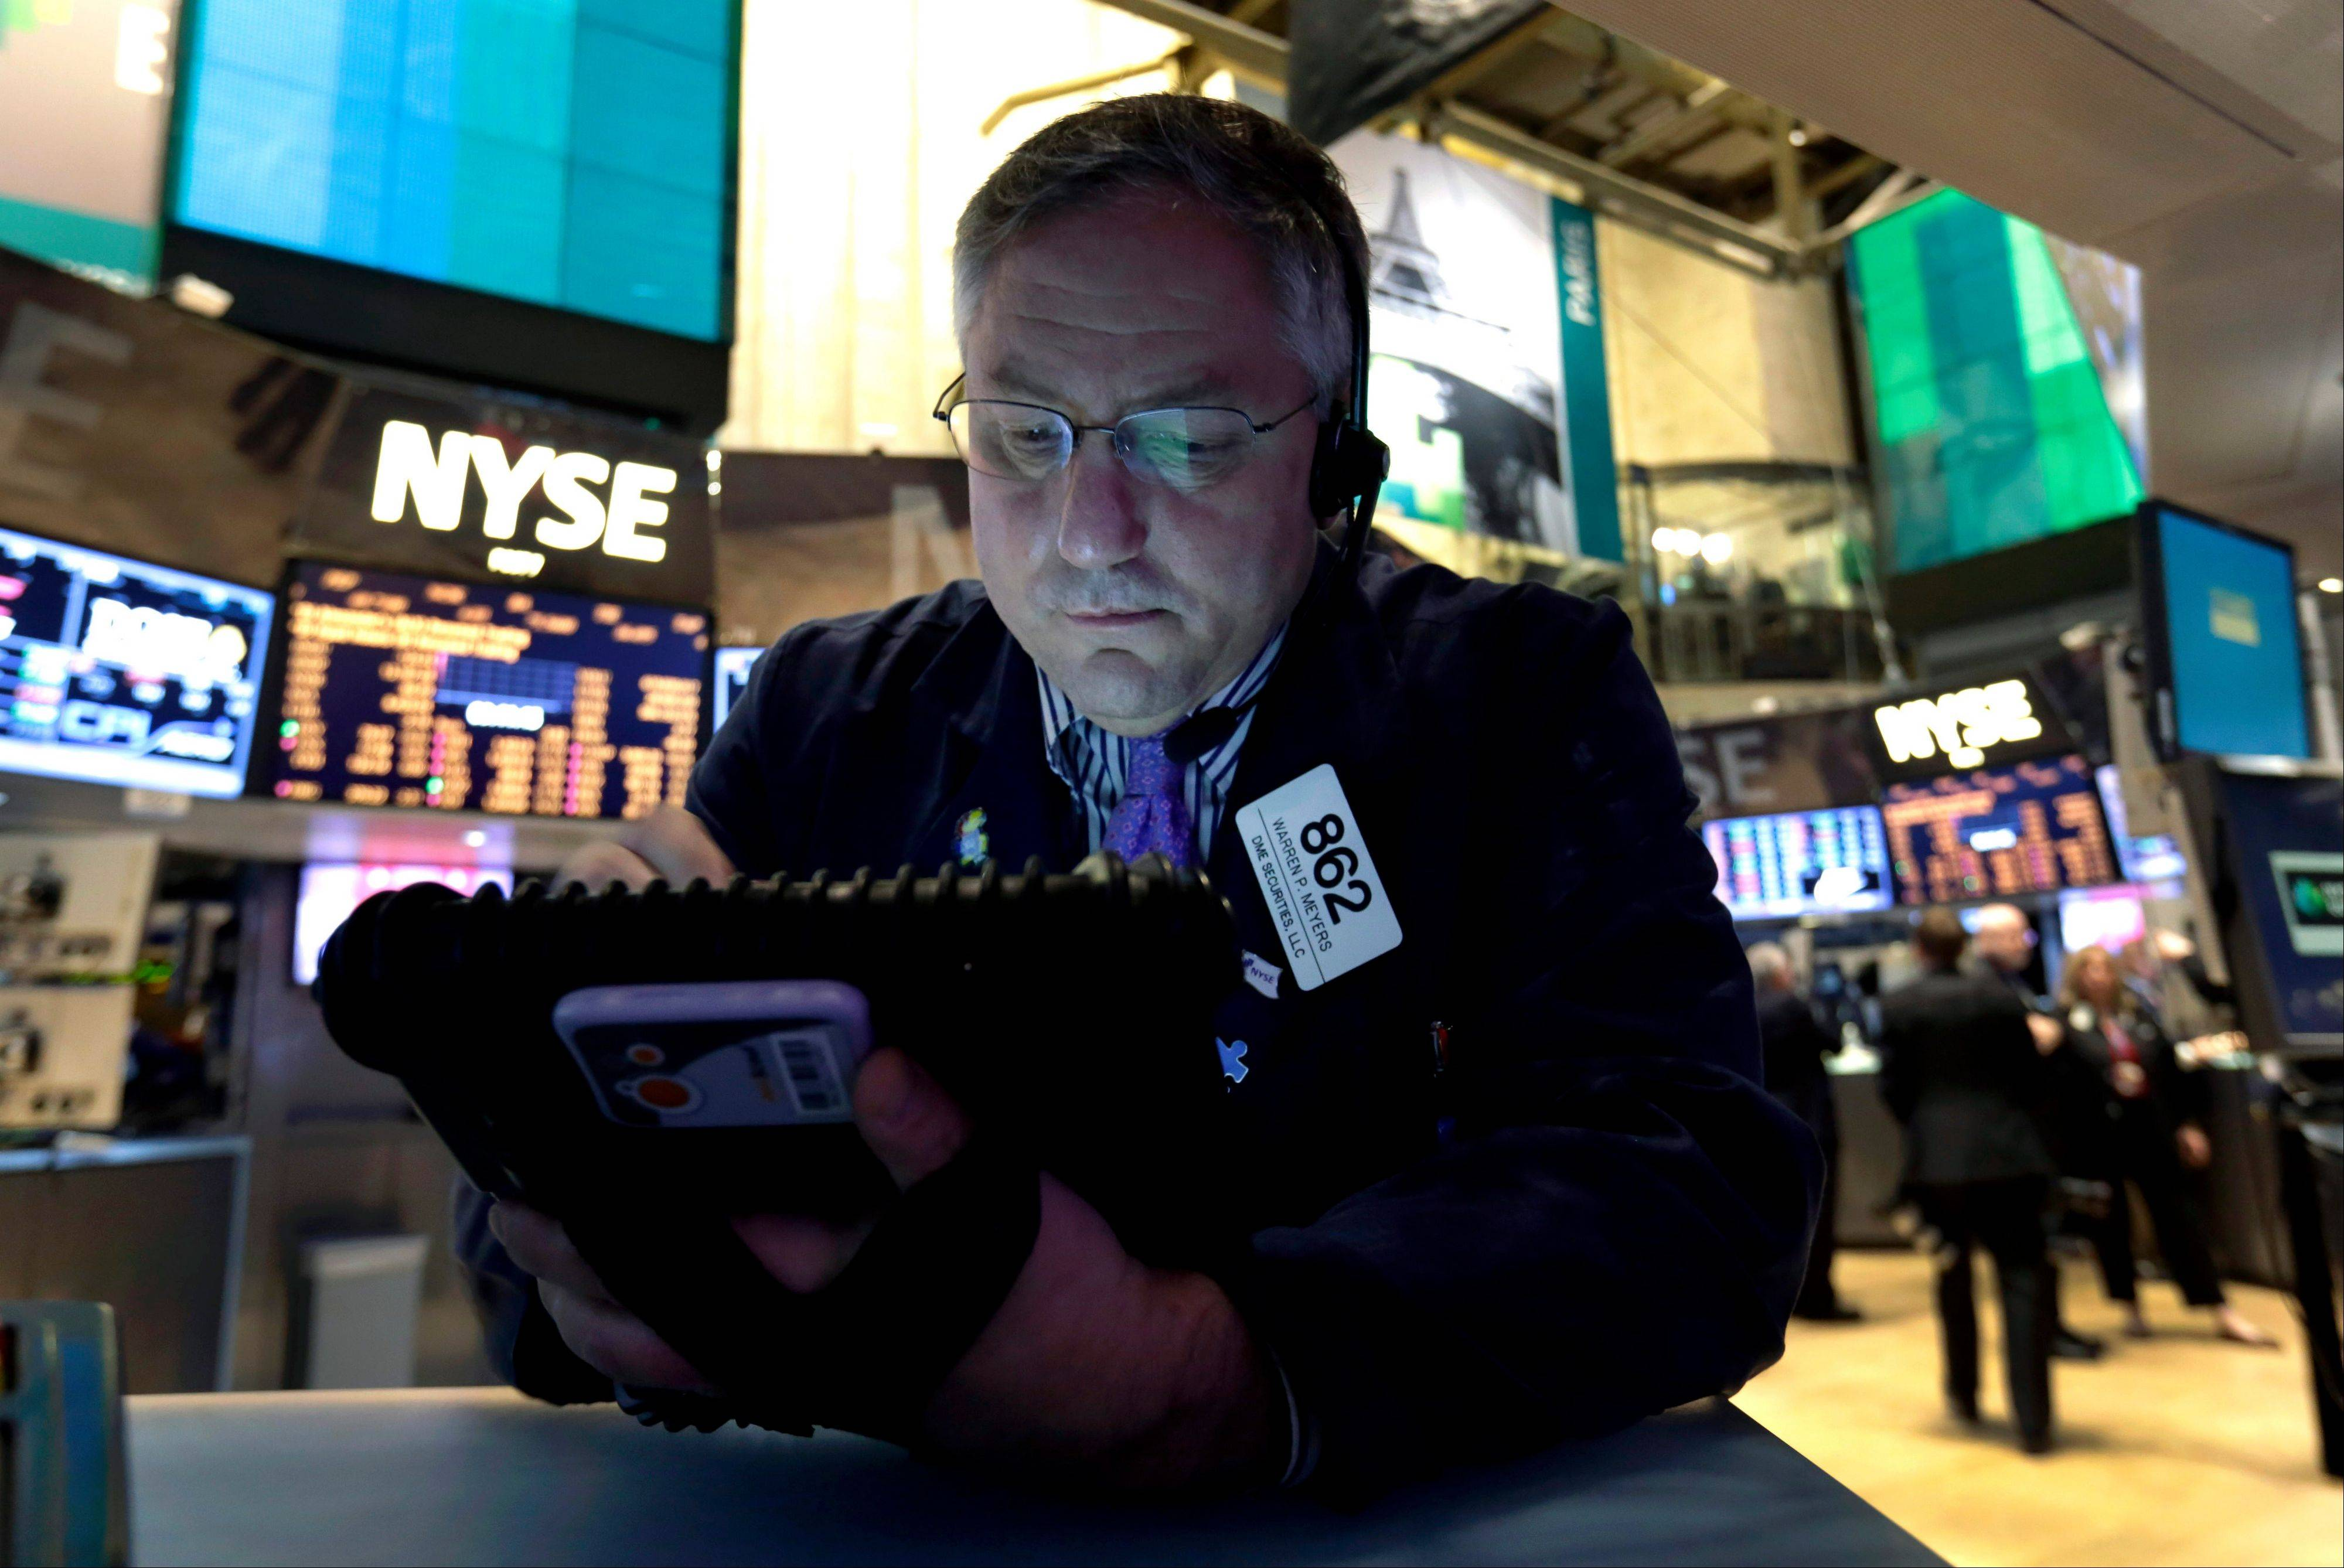 In this New York Stock Exchange Friday, Dec. 21, 2012, photo, Trader Warren Meyers uses his handheld device as he works on the floor of the New York Stock Exchange. Stocks are down Monday, Dec. 24, 2012, amid concern that lawmakers will fail to reach a deal to stop the U.S. going over the so-called fiscal cliff.